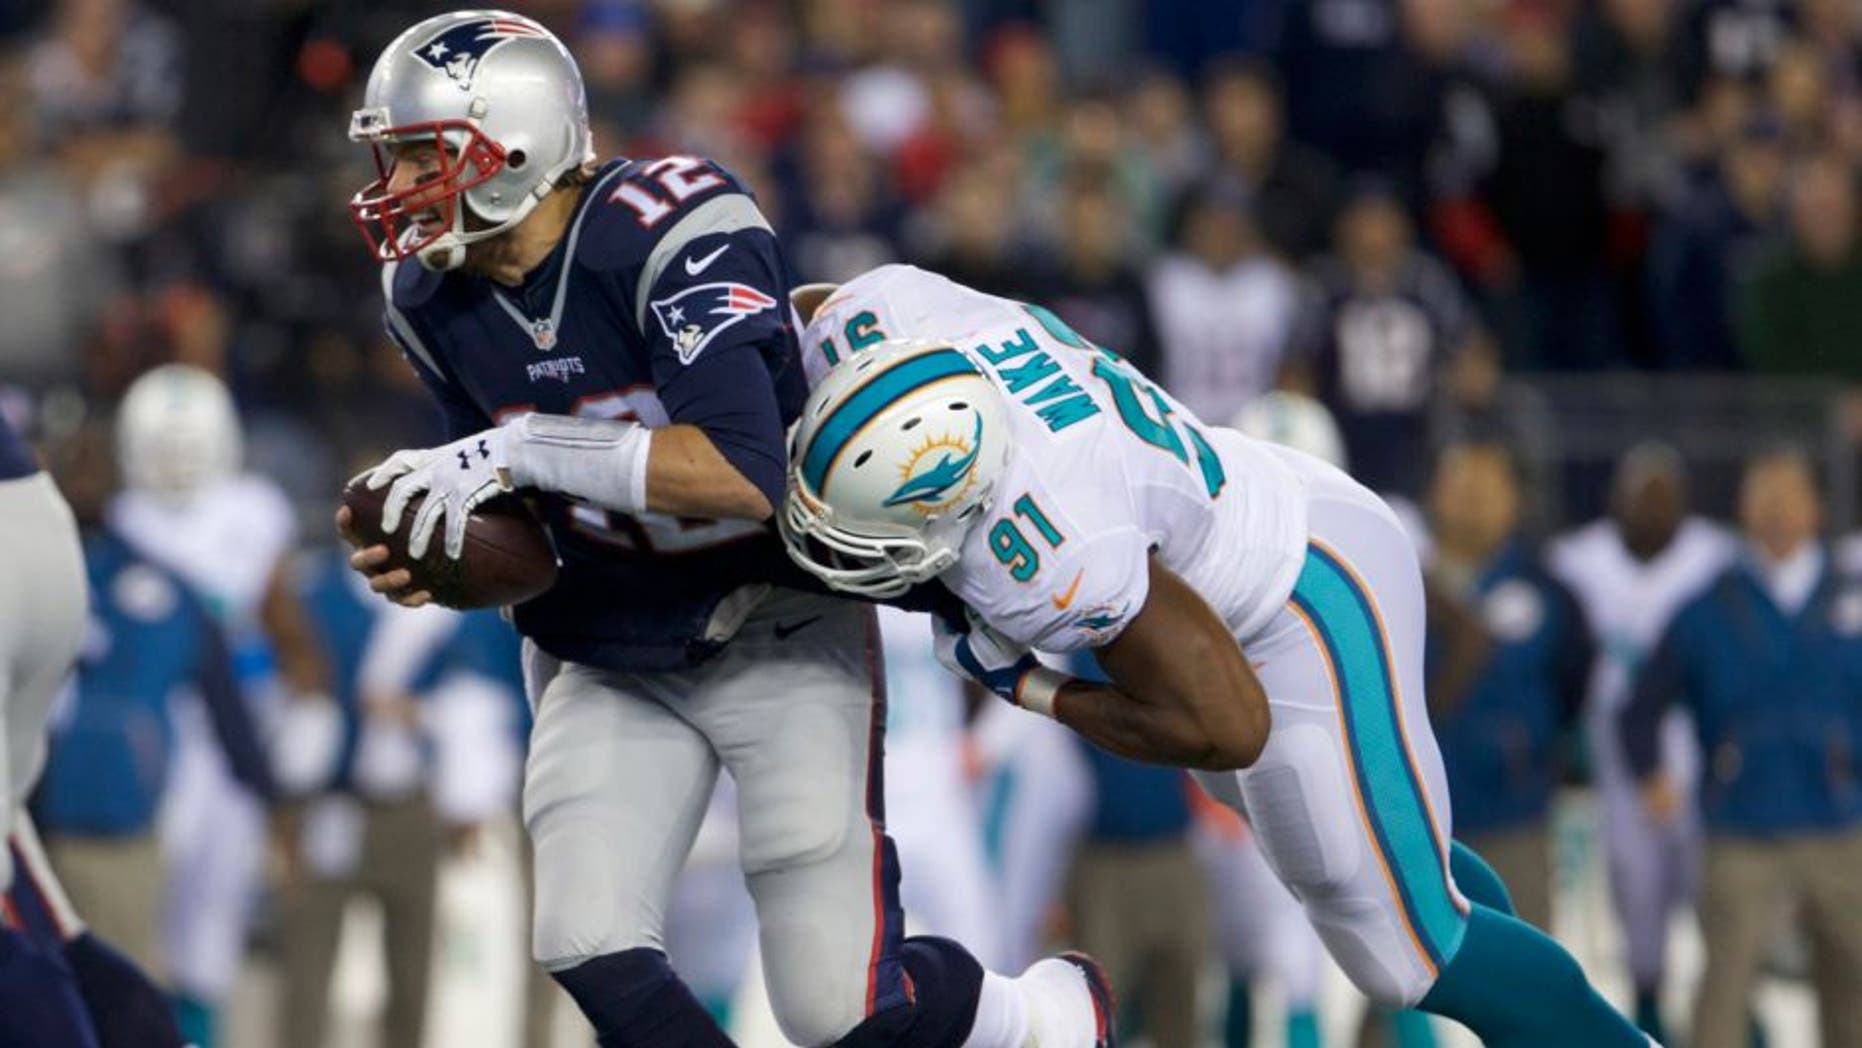 Oct 29, 2015; Foxborough, MA, USA; New England Patriots quarterback Tom Brady (12) is sacked by Miami Dolphins defensive end Cameron Wake (91) in the second quarter at Gillette Stadium. Mandatory Credit: David Butler II-USA TODAY Sports